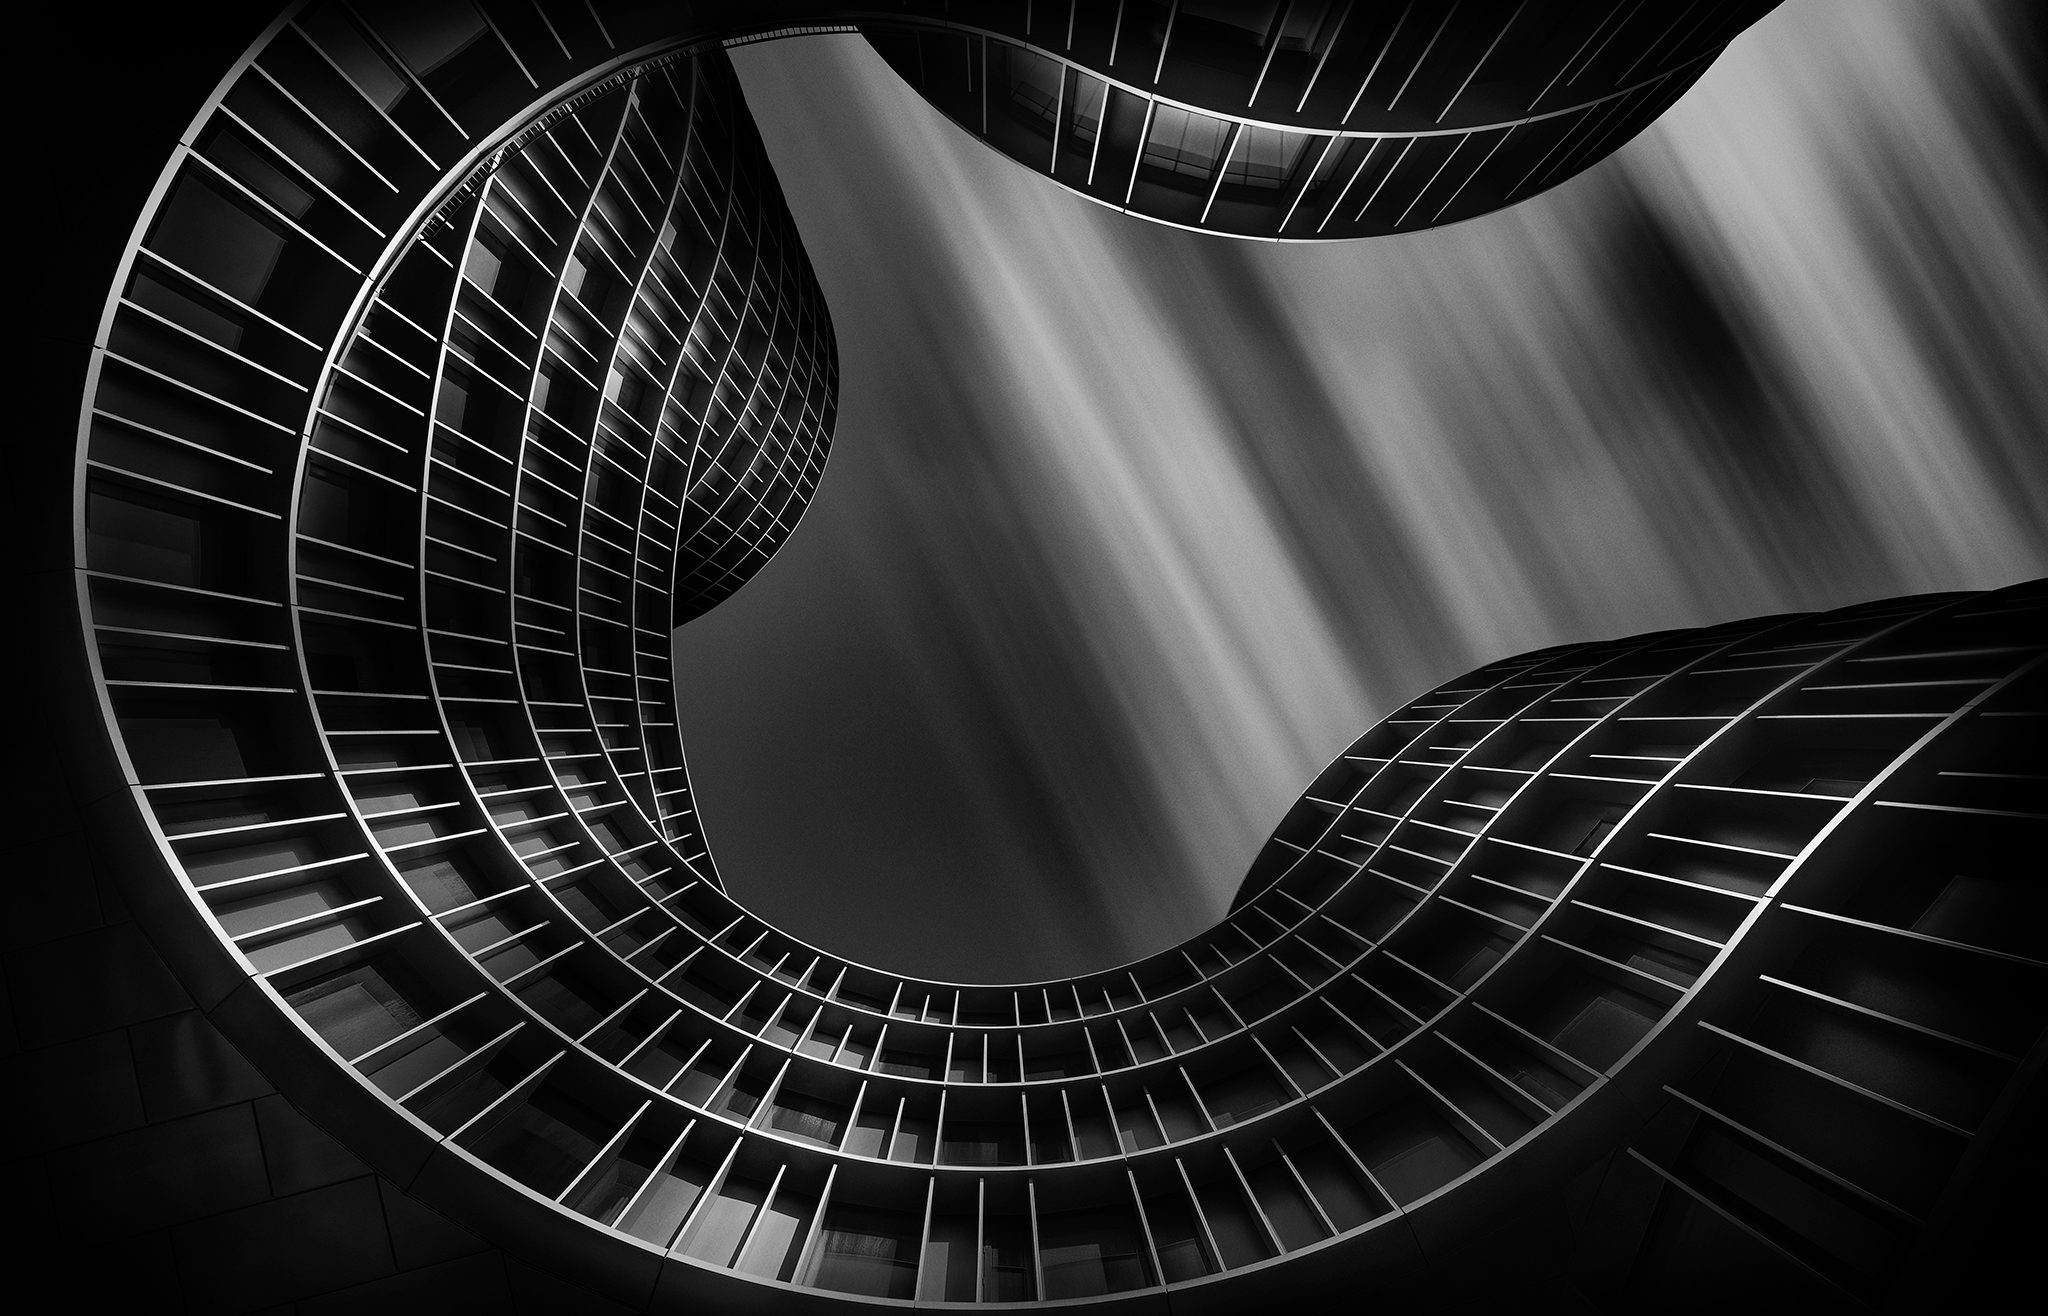 Long exposure fine art black and white architecture photography. Axel Towers were finished in 2017 consisting of several towers combined together into one big architectural piece of wonder.